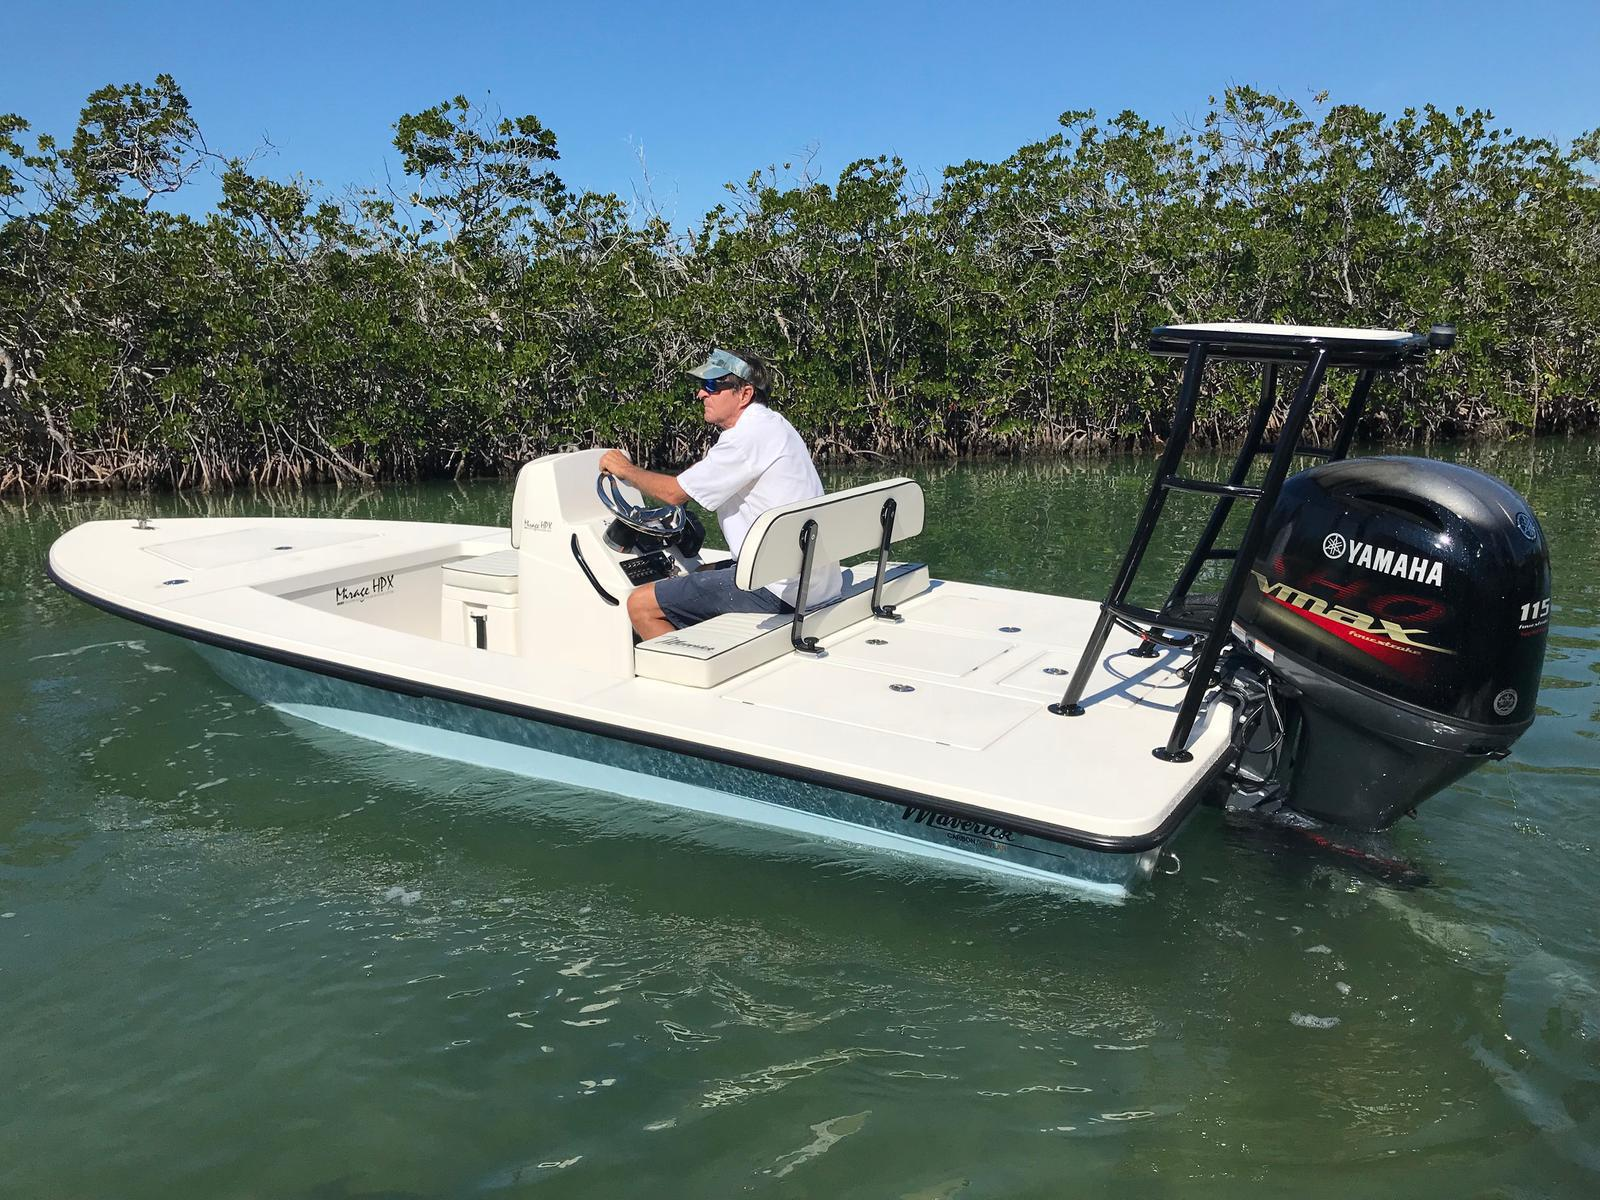 Inventory from Hewes and Maverick Caribee Boat Sales Islamorada, FL